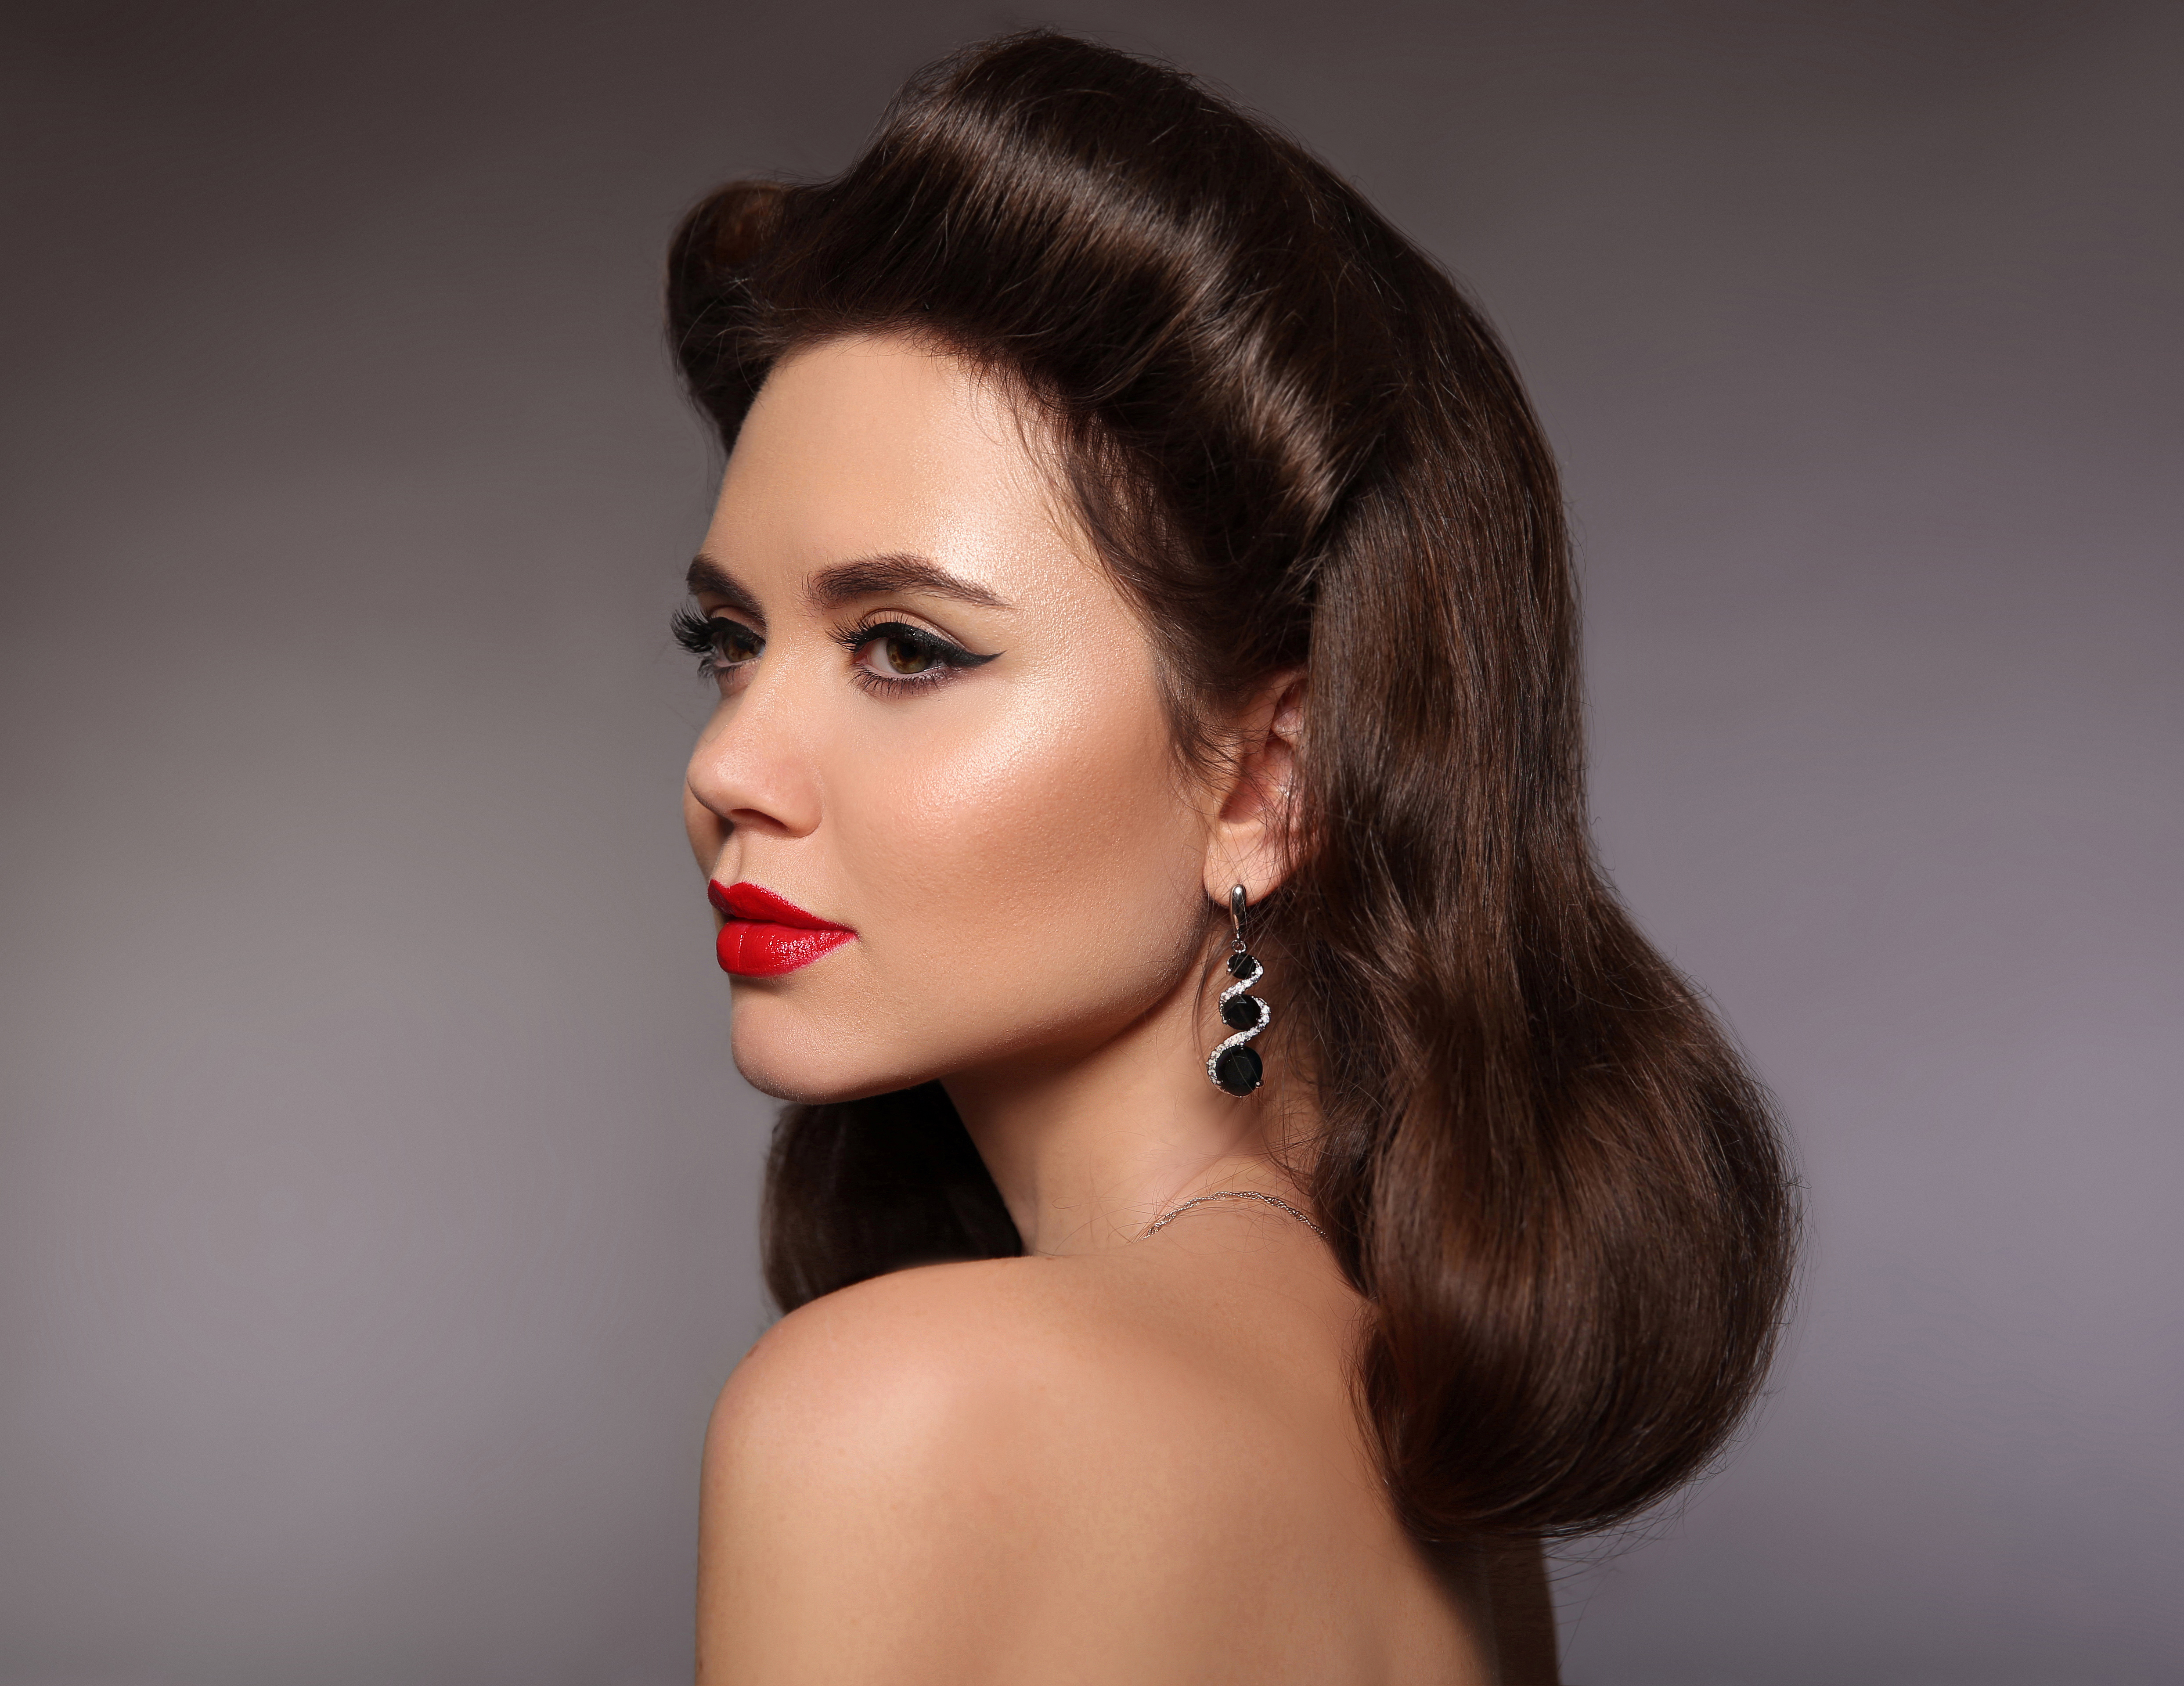 woman with brown, voluminous hair and red lipstick.jpeg